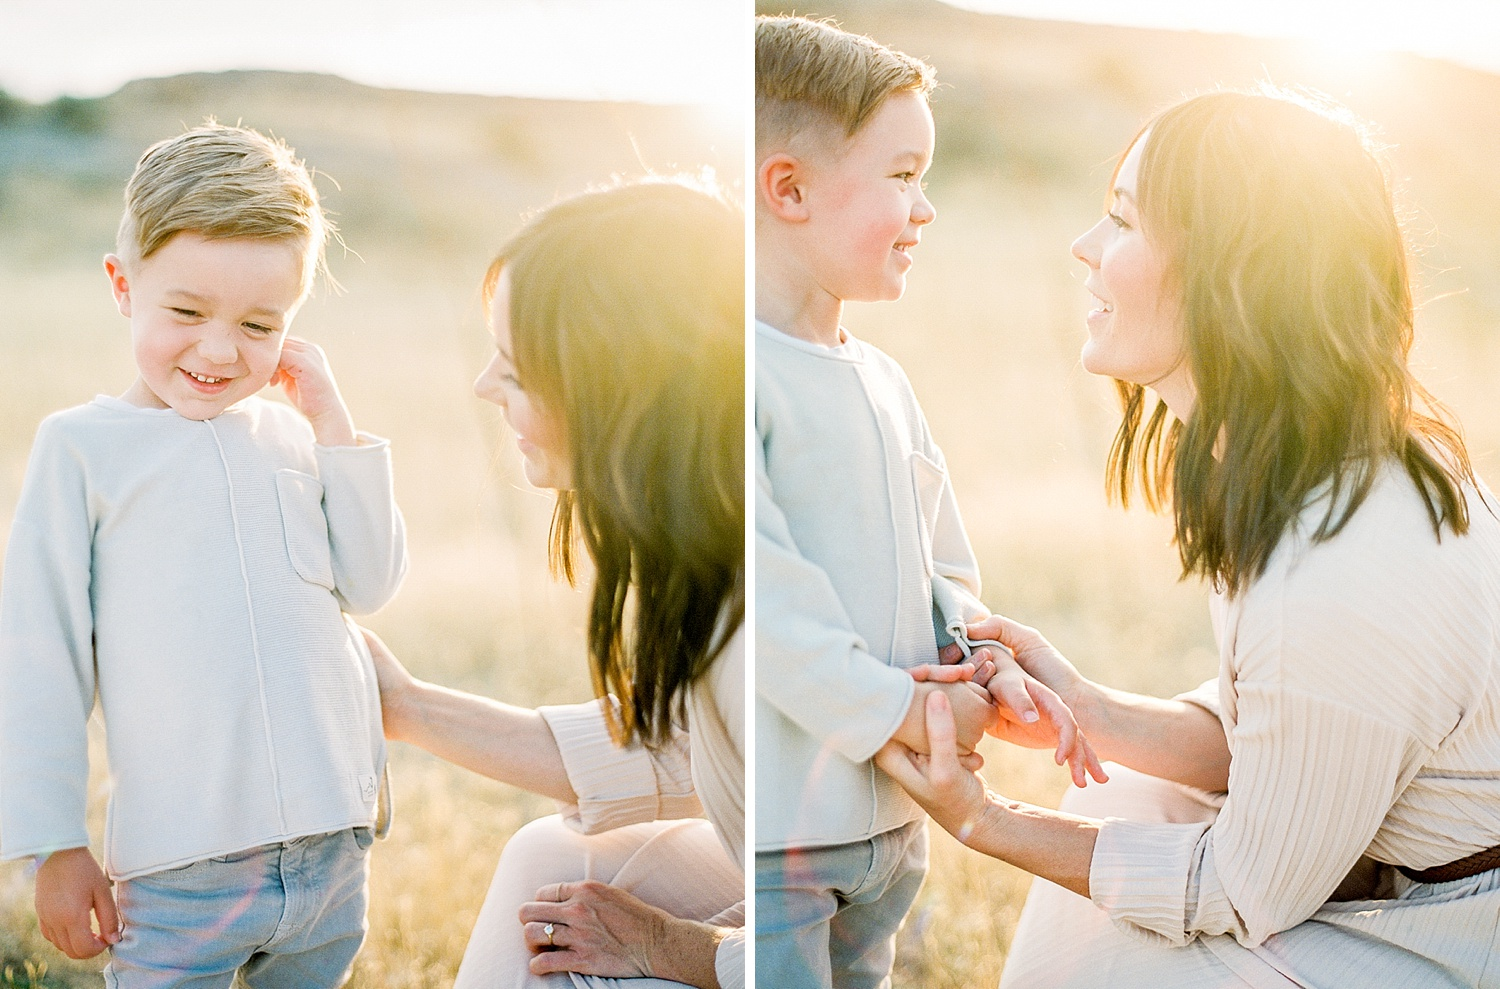 greenapplephotography_0013_utahfamily_magicchildhood.jpg